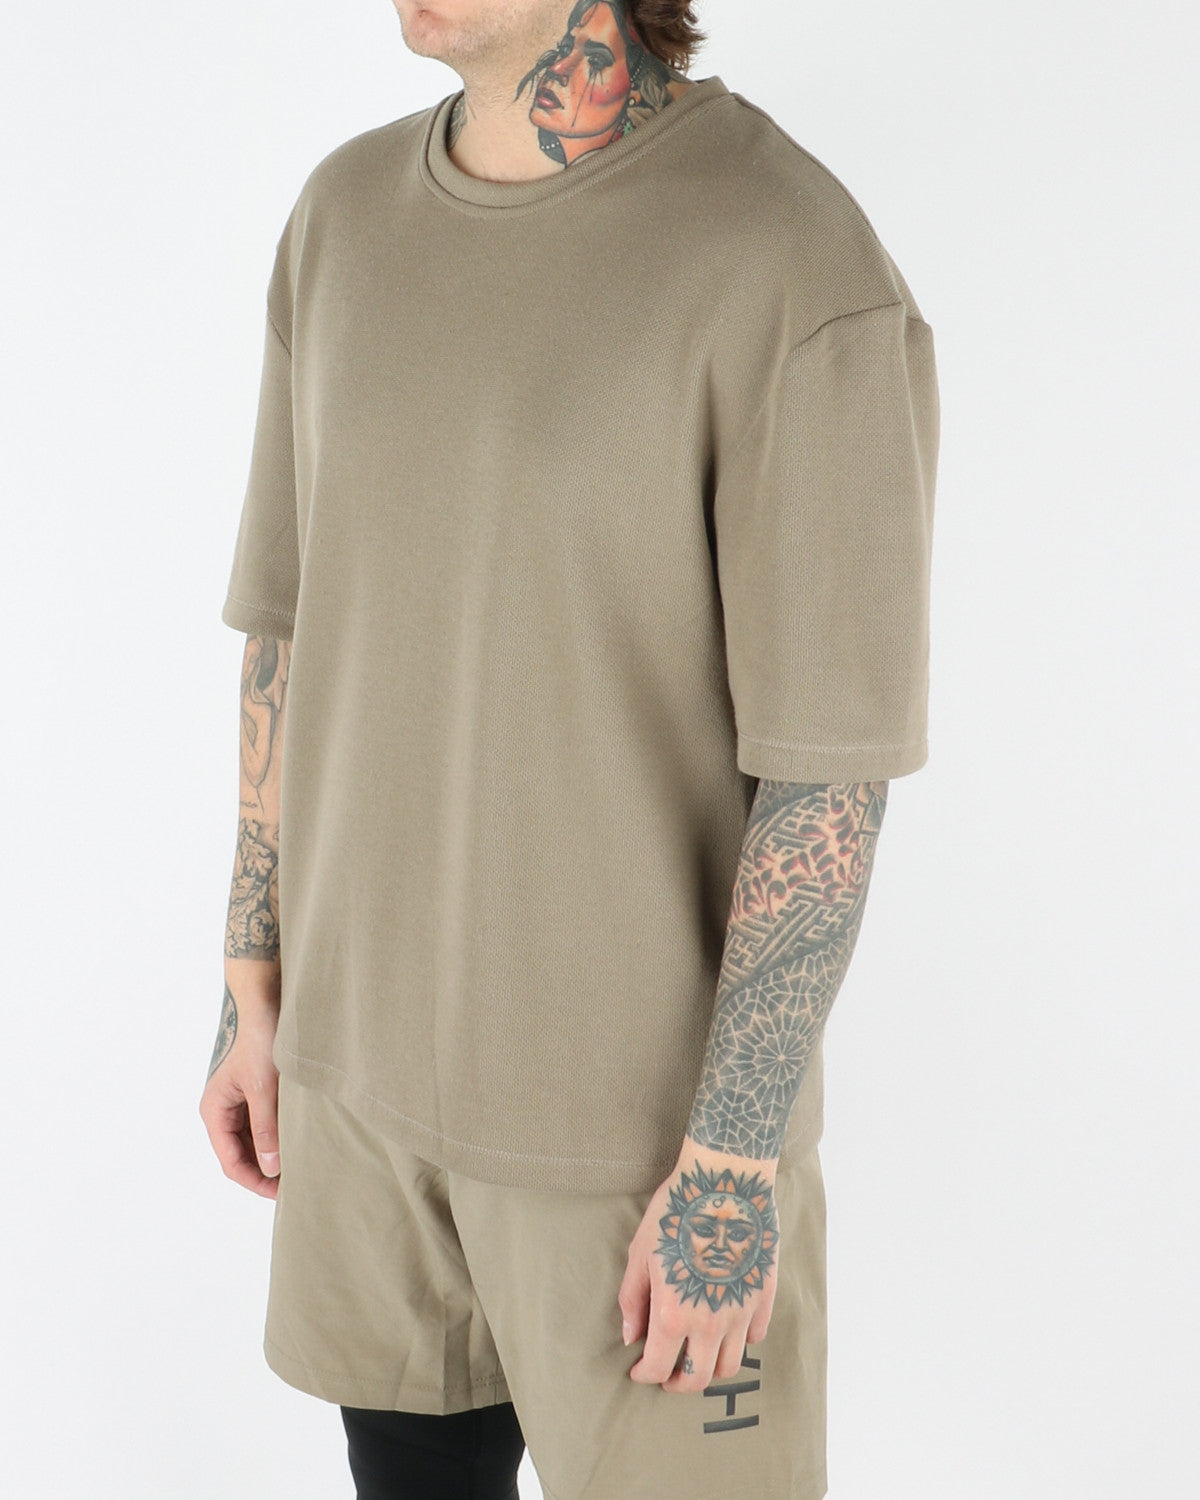 halo newline_drop_t-shirt_light olive_view_1_3